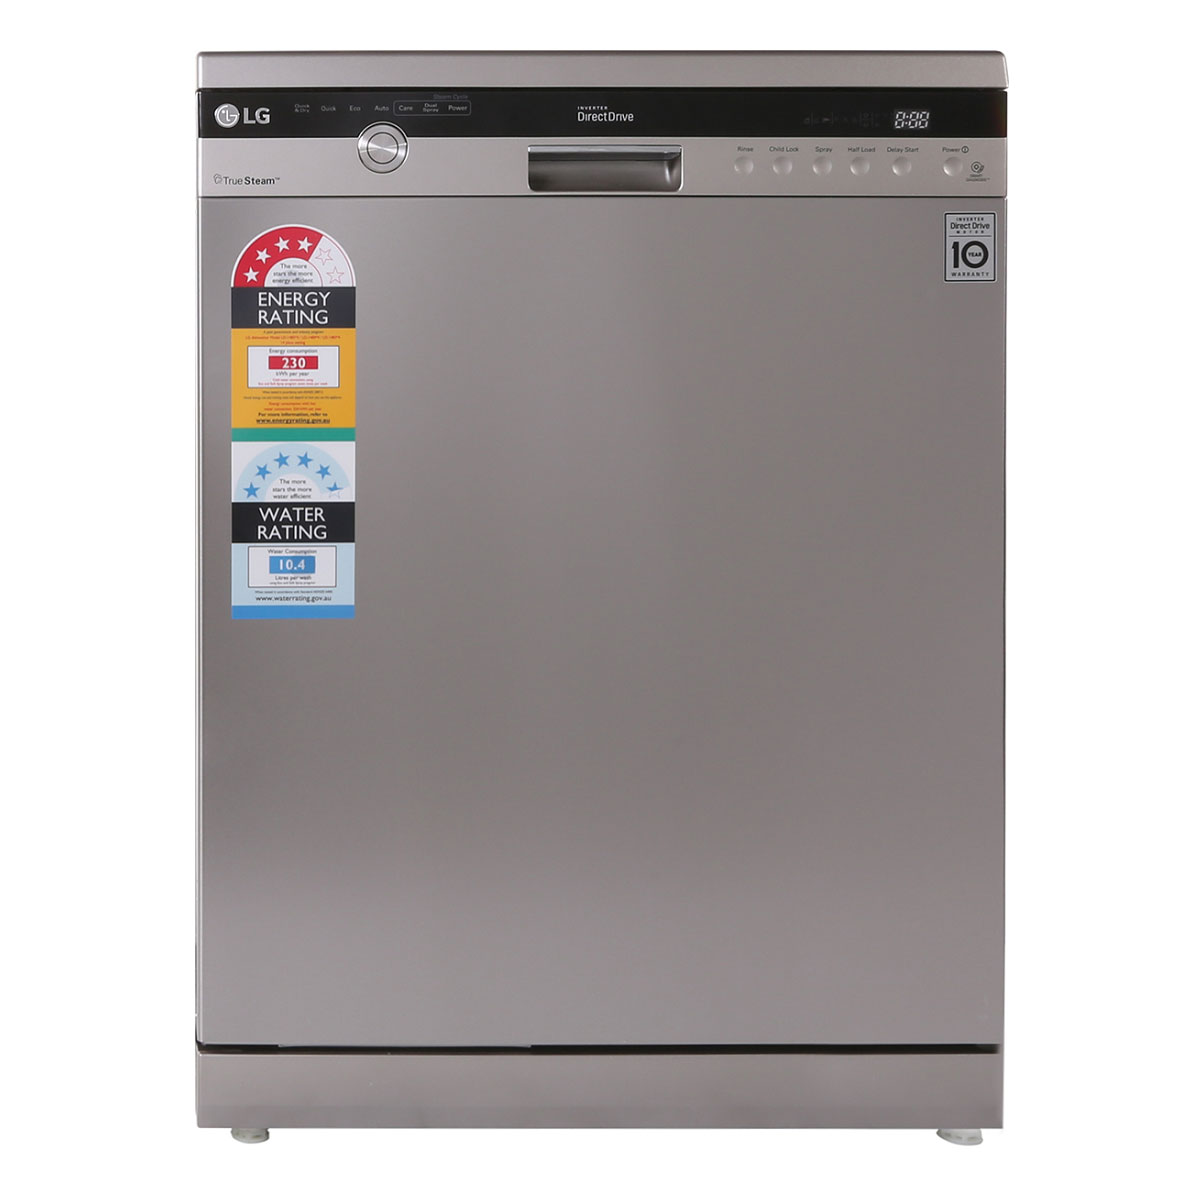 LG LD1484T4 Freestanding Stainless Dishwasher with True Steam